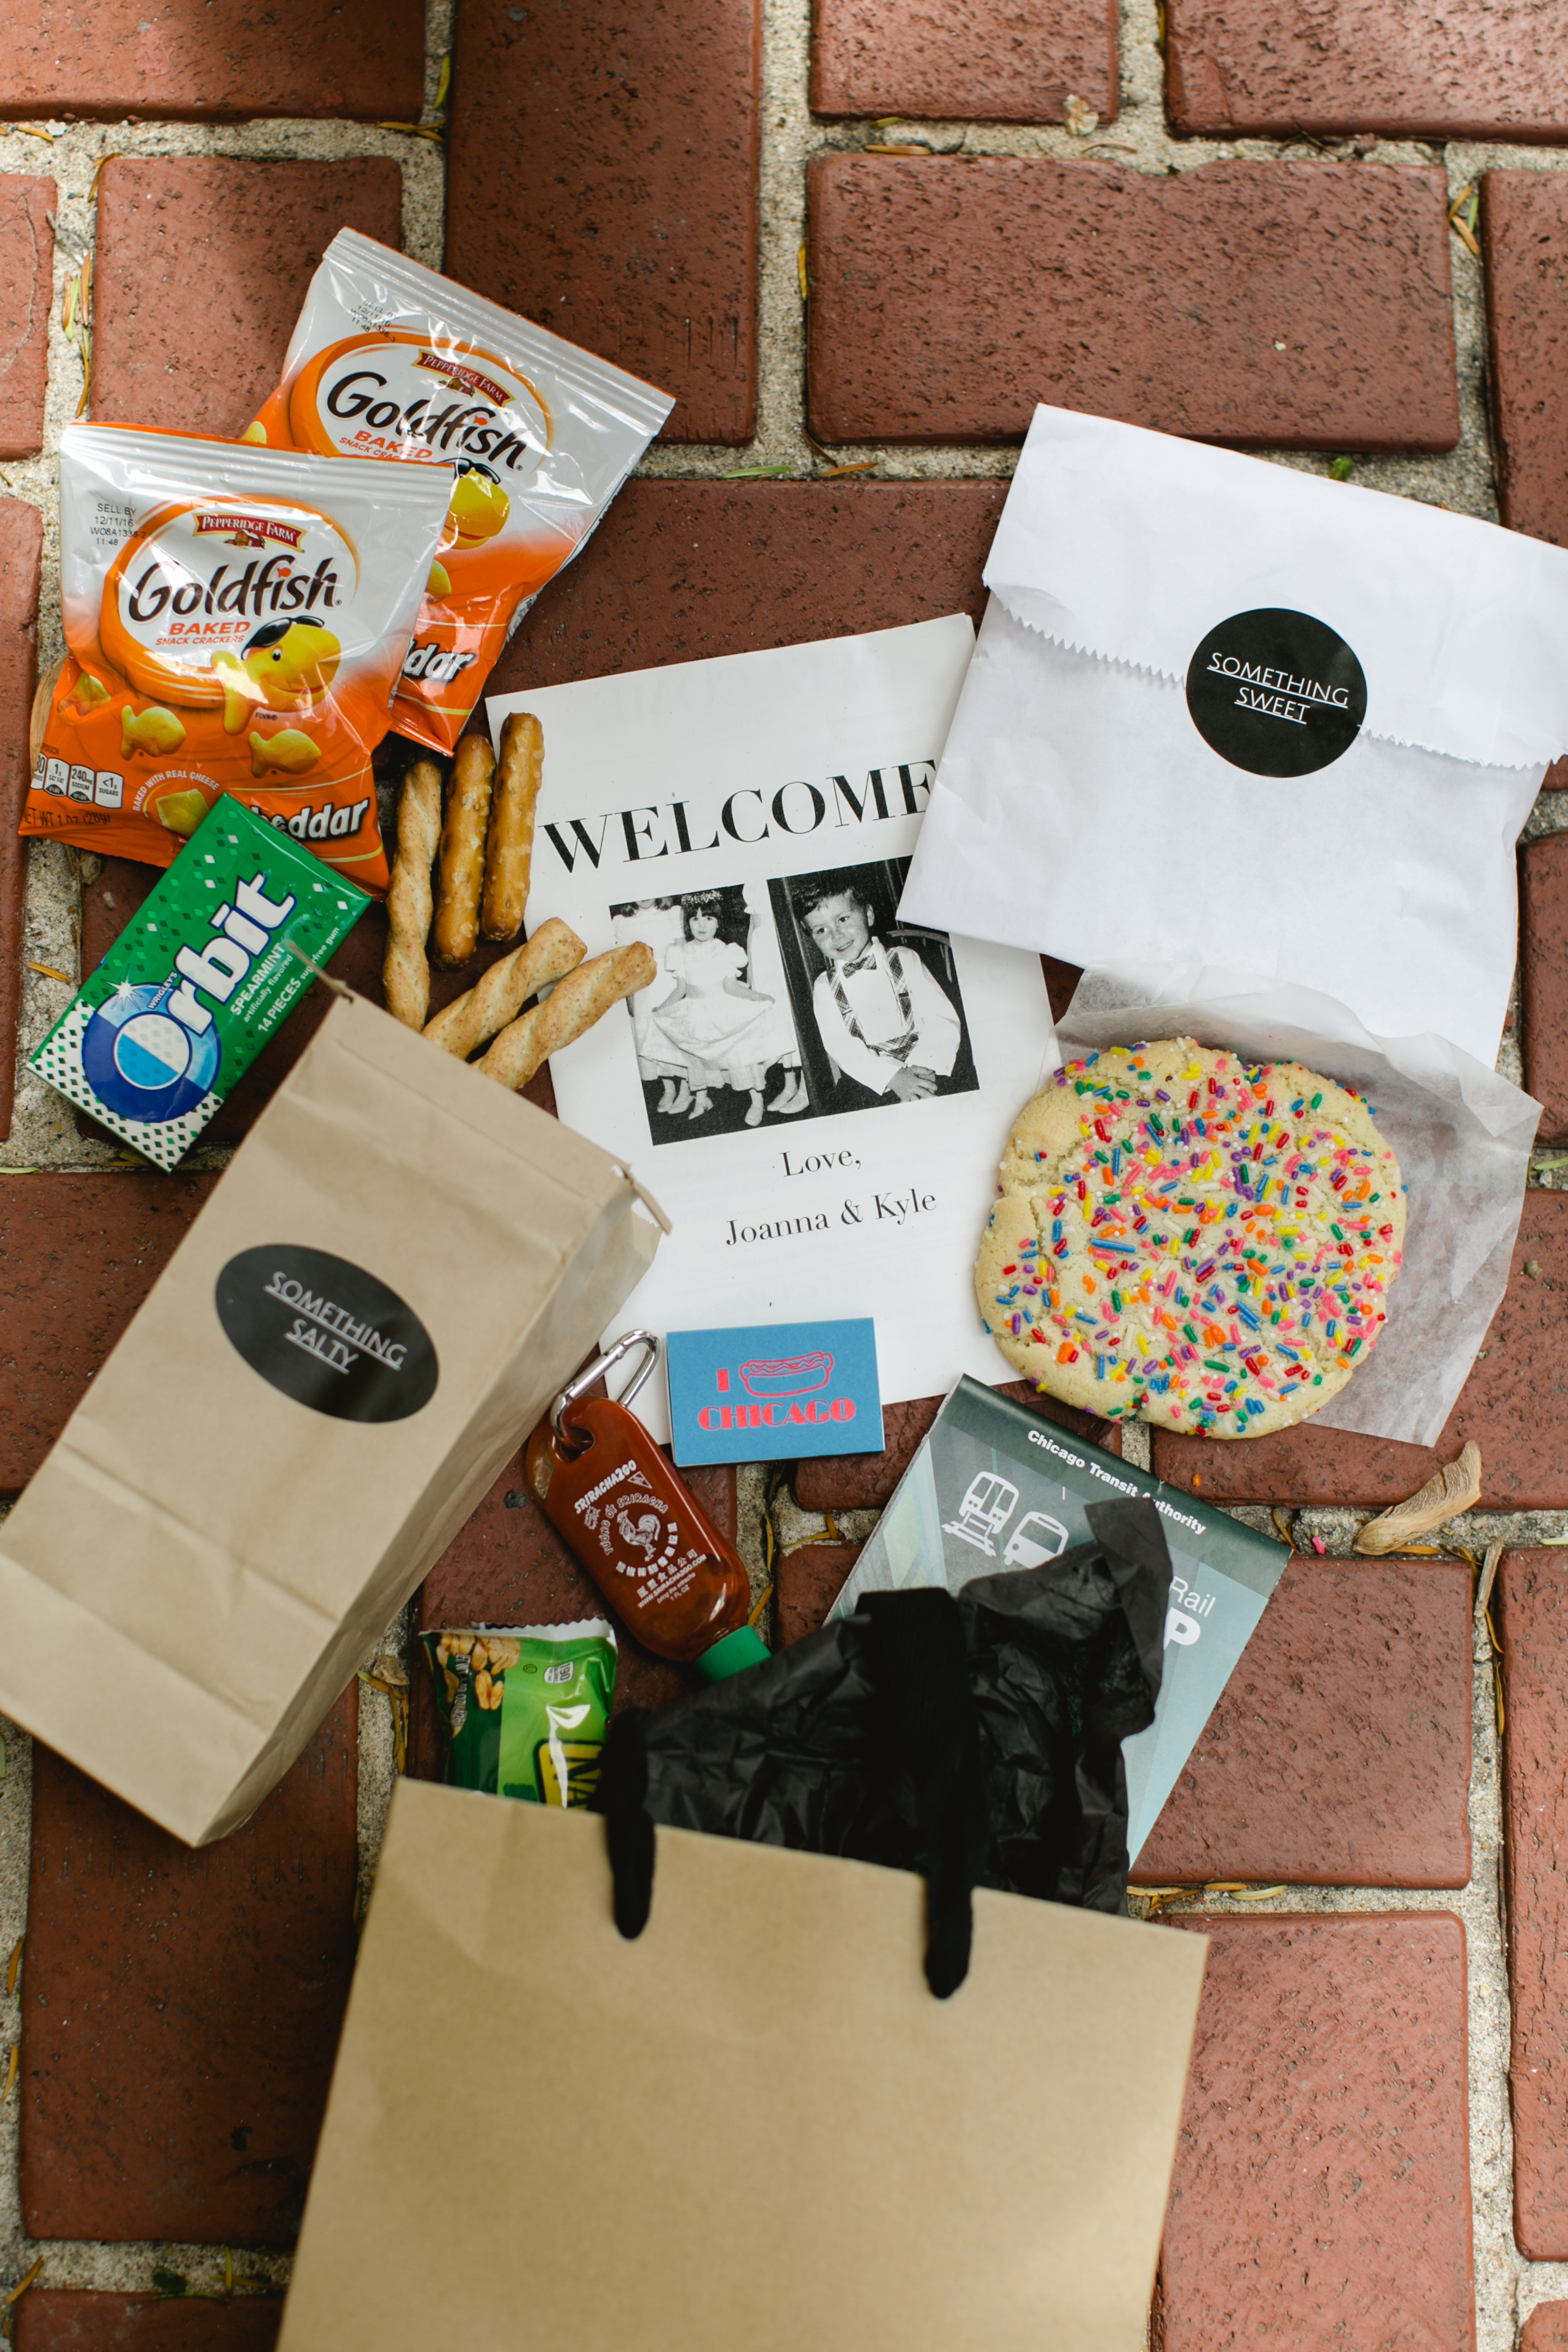 The Welcome Bag